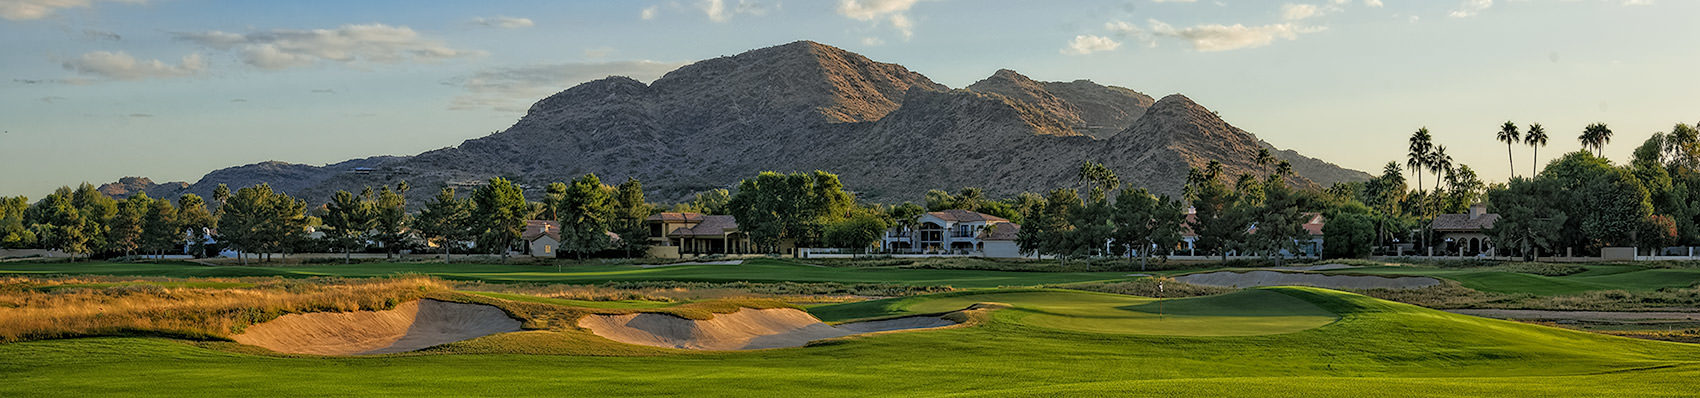 <div class='title'>           Ambiente's 13th          </div>                 <div class='description'>           JW Marriott Camelback Resort's Ambiente Course, 12th Hole, with Camelback Mountain in the background         </div>